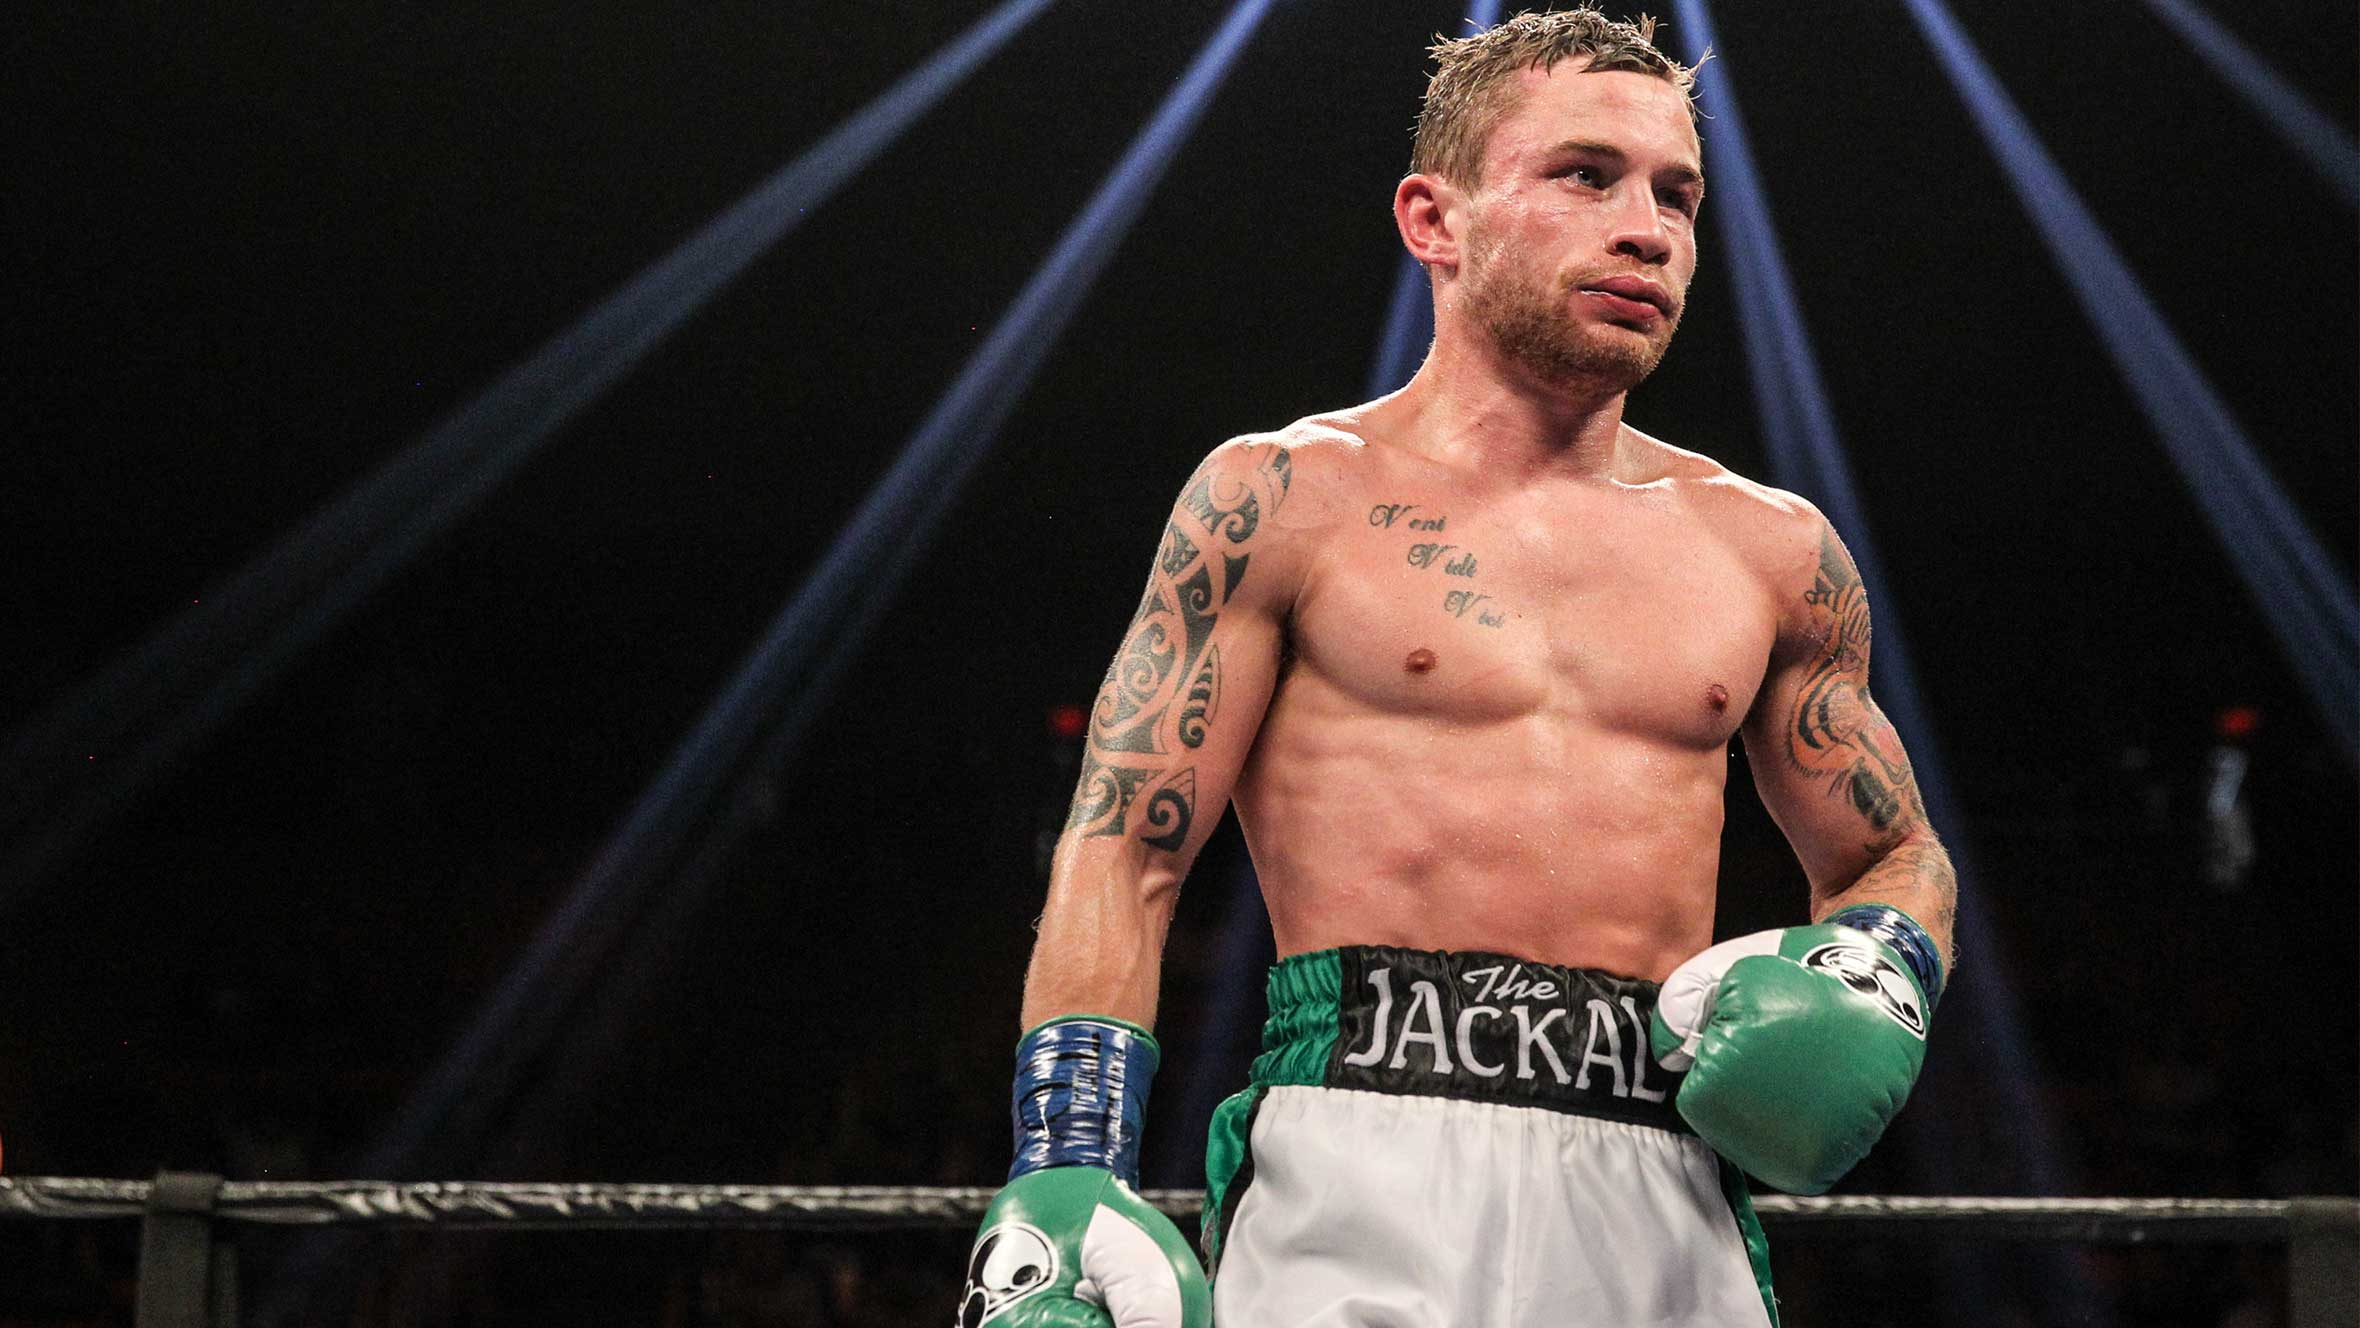 Carl Frampton's master plan: Take care of Scott Quigg, then move on to Guillermo Rigondeaux